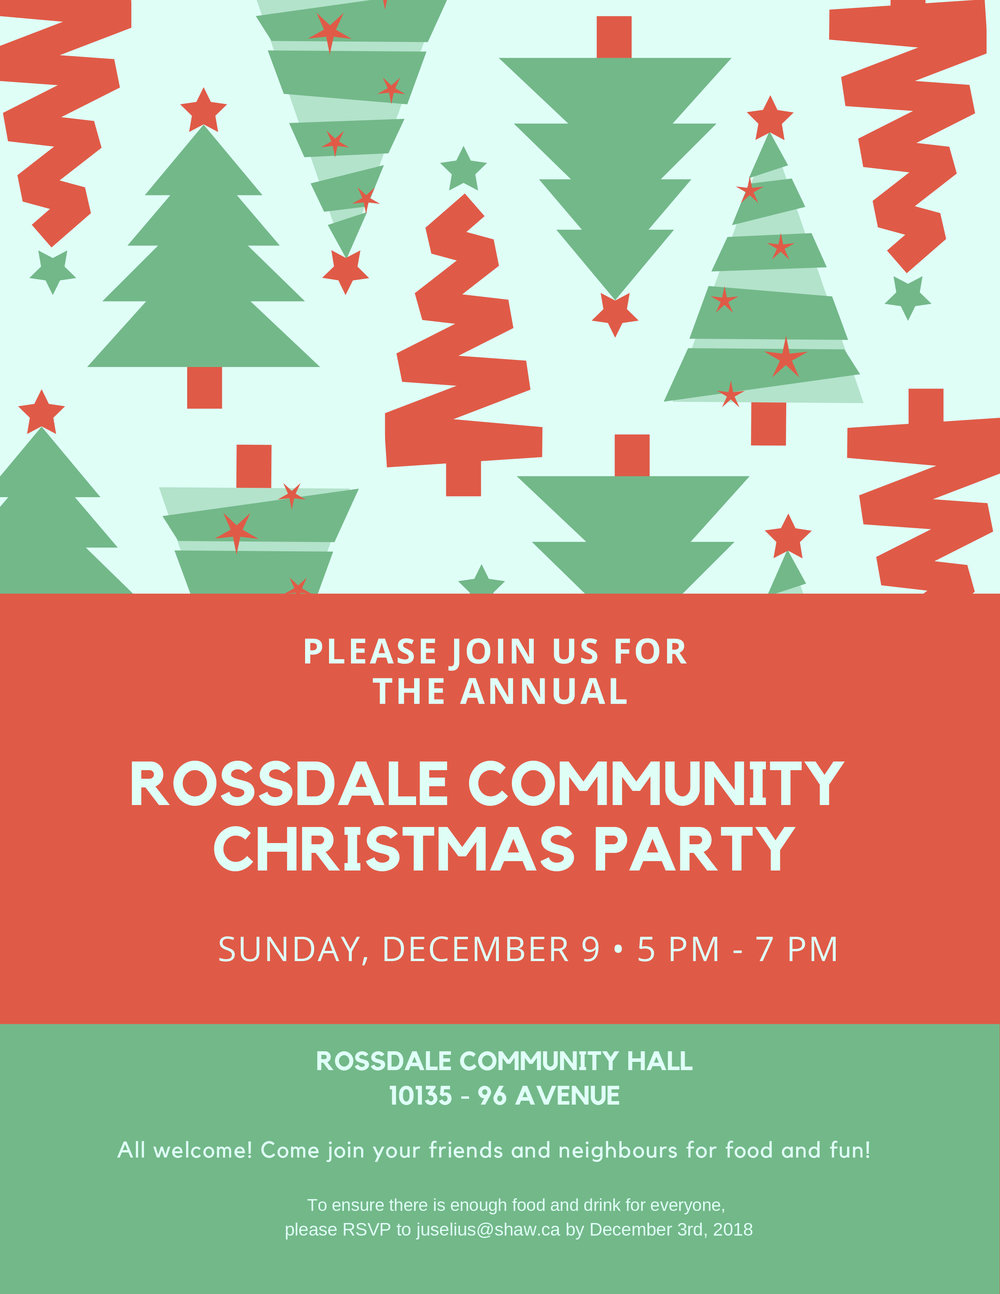 ROSSDALE COMMUNITY CHRISTMAS PARTY.jpg